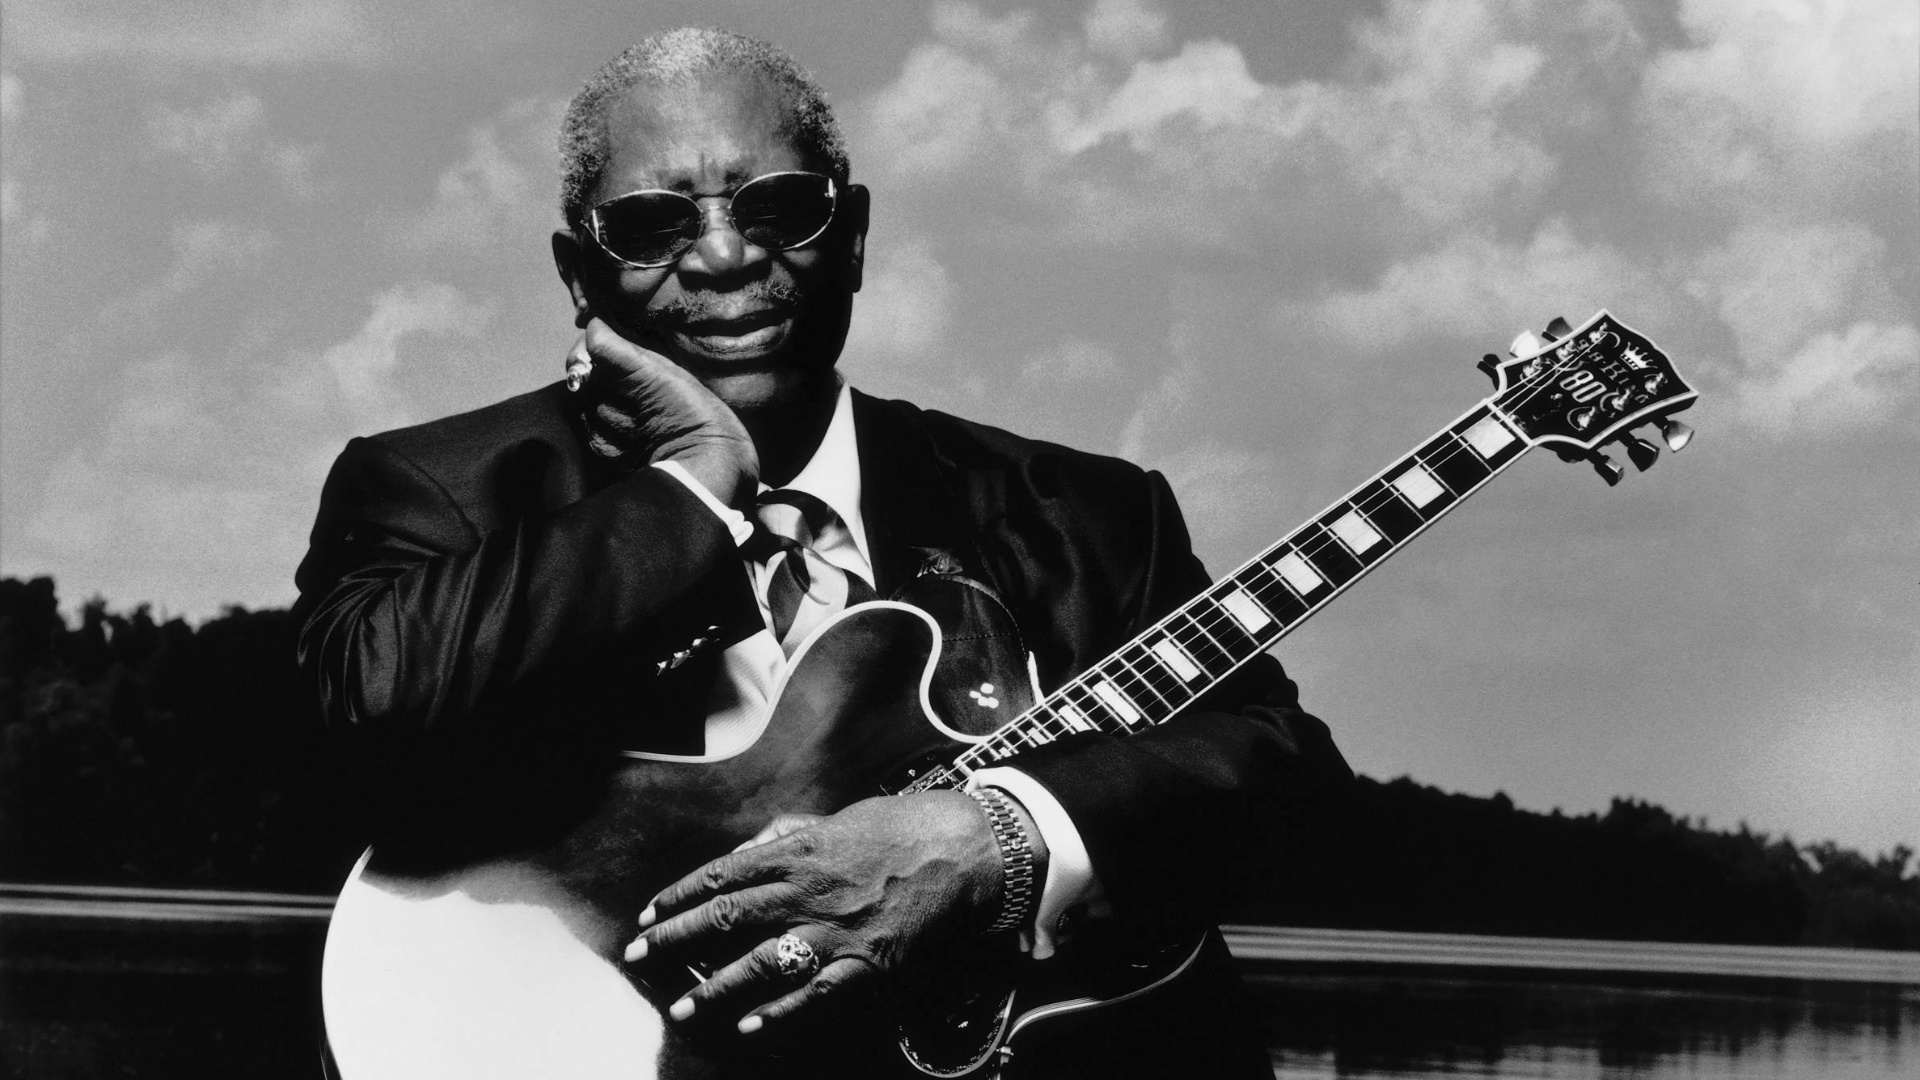 Ray Charles - B.B. King - Originals Superstars